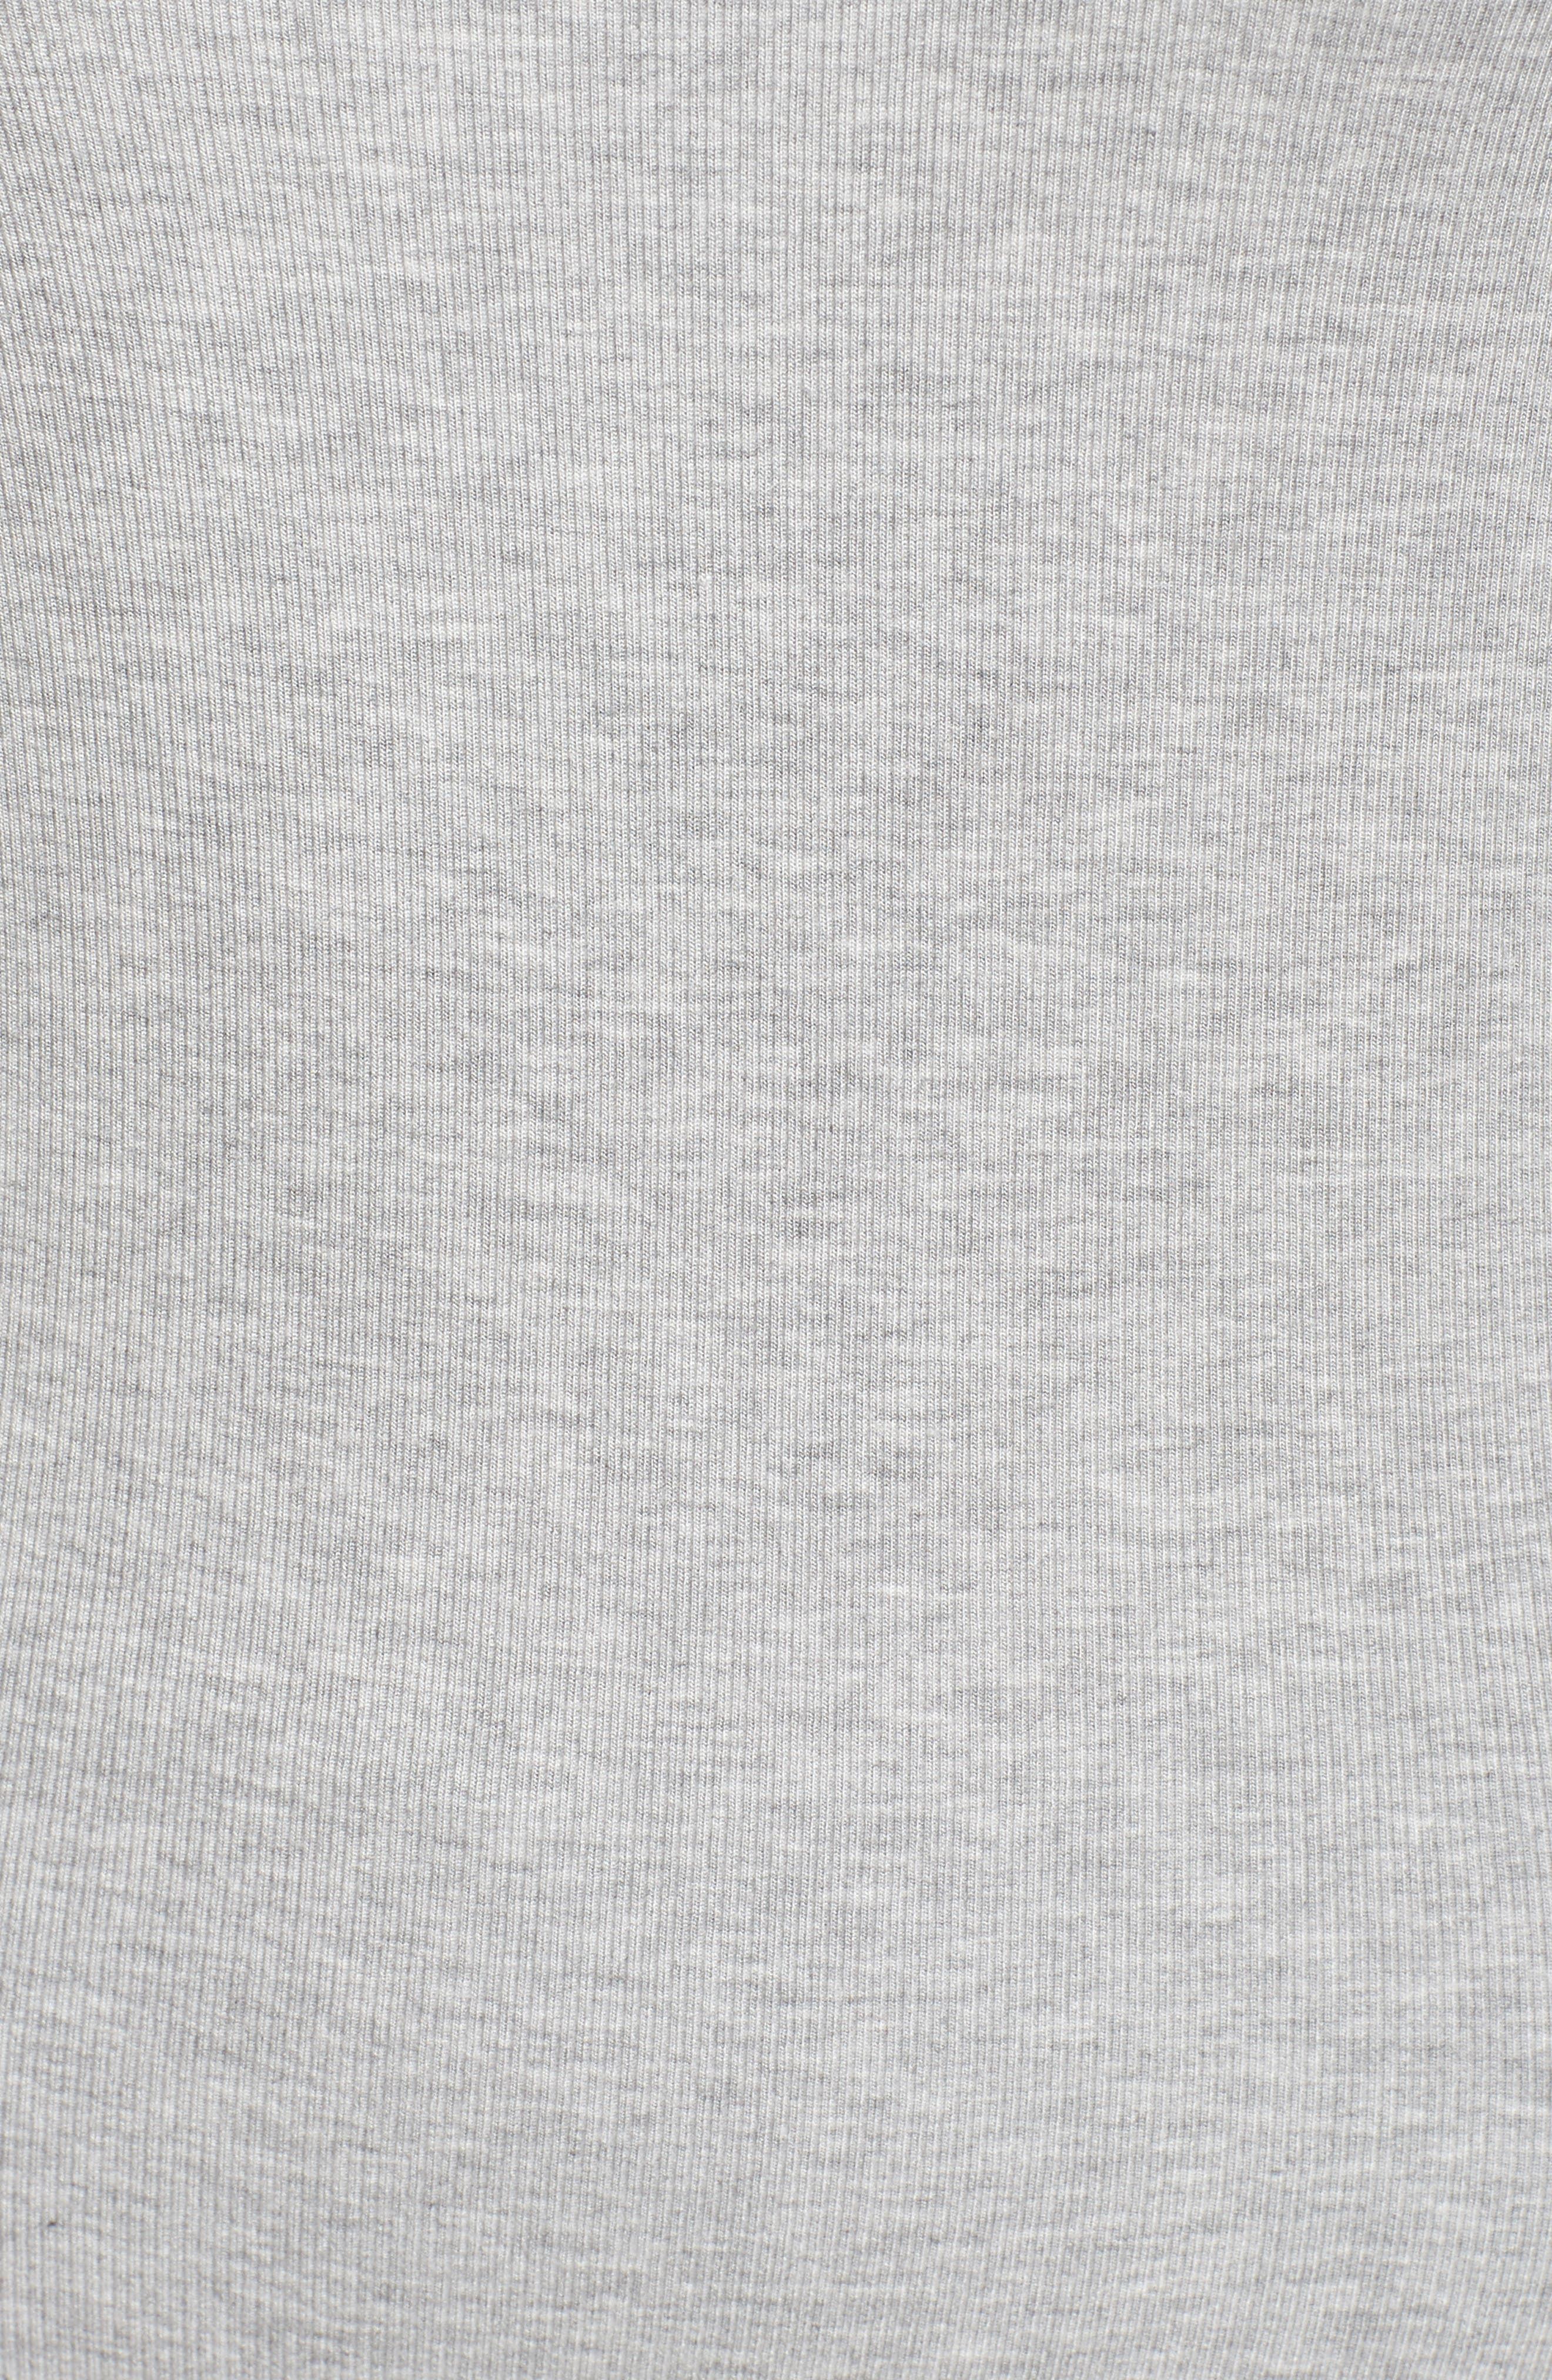 Alley Tee,                             Alternate thumbnail 11, color,